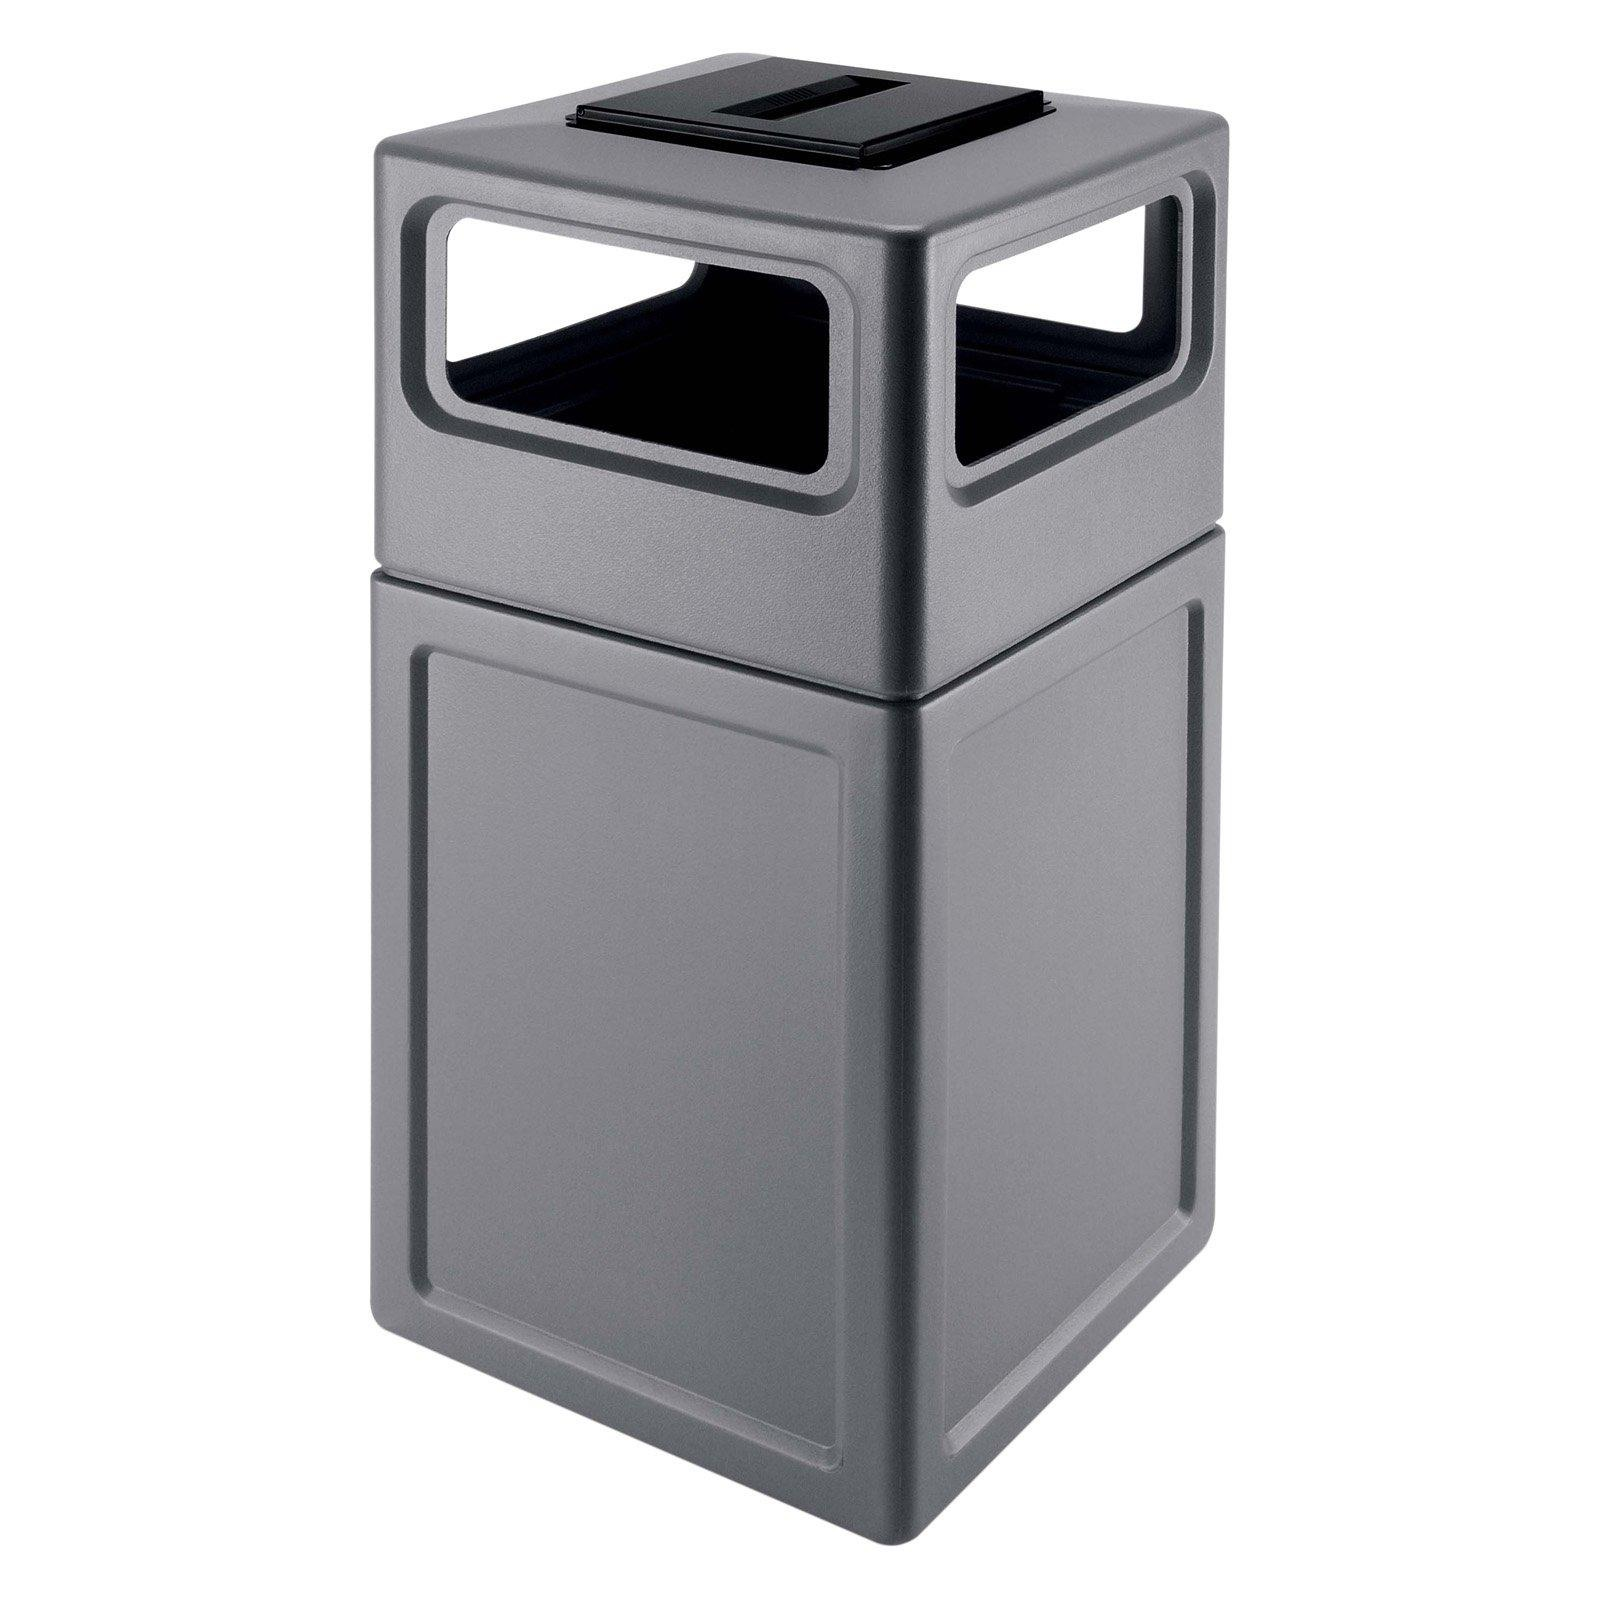 Rubbermaid Commercial Products Plaza Receptacle 50 Gallon Swing Top Trash Can